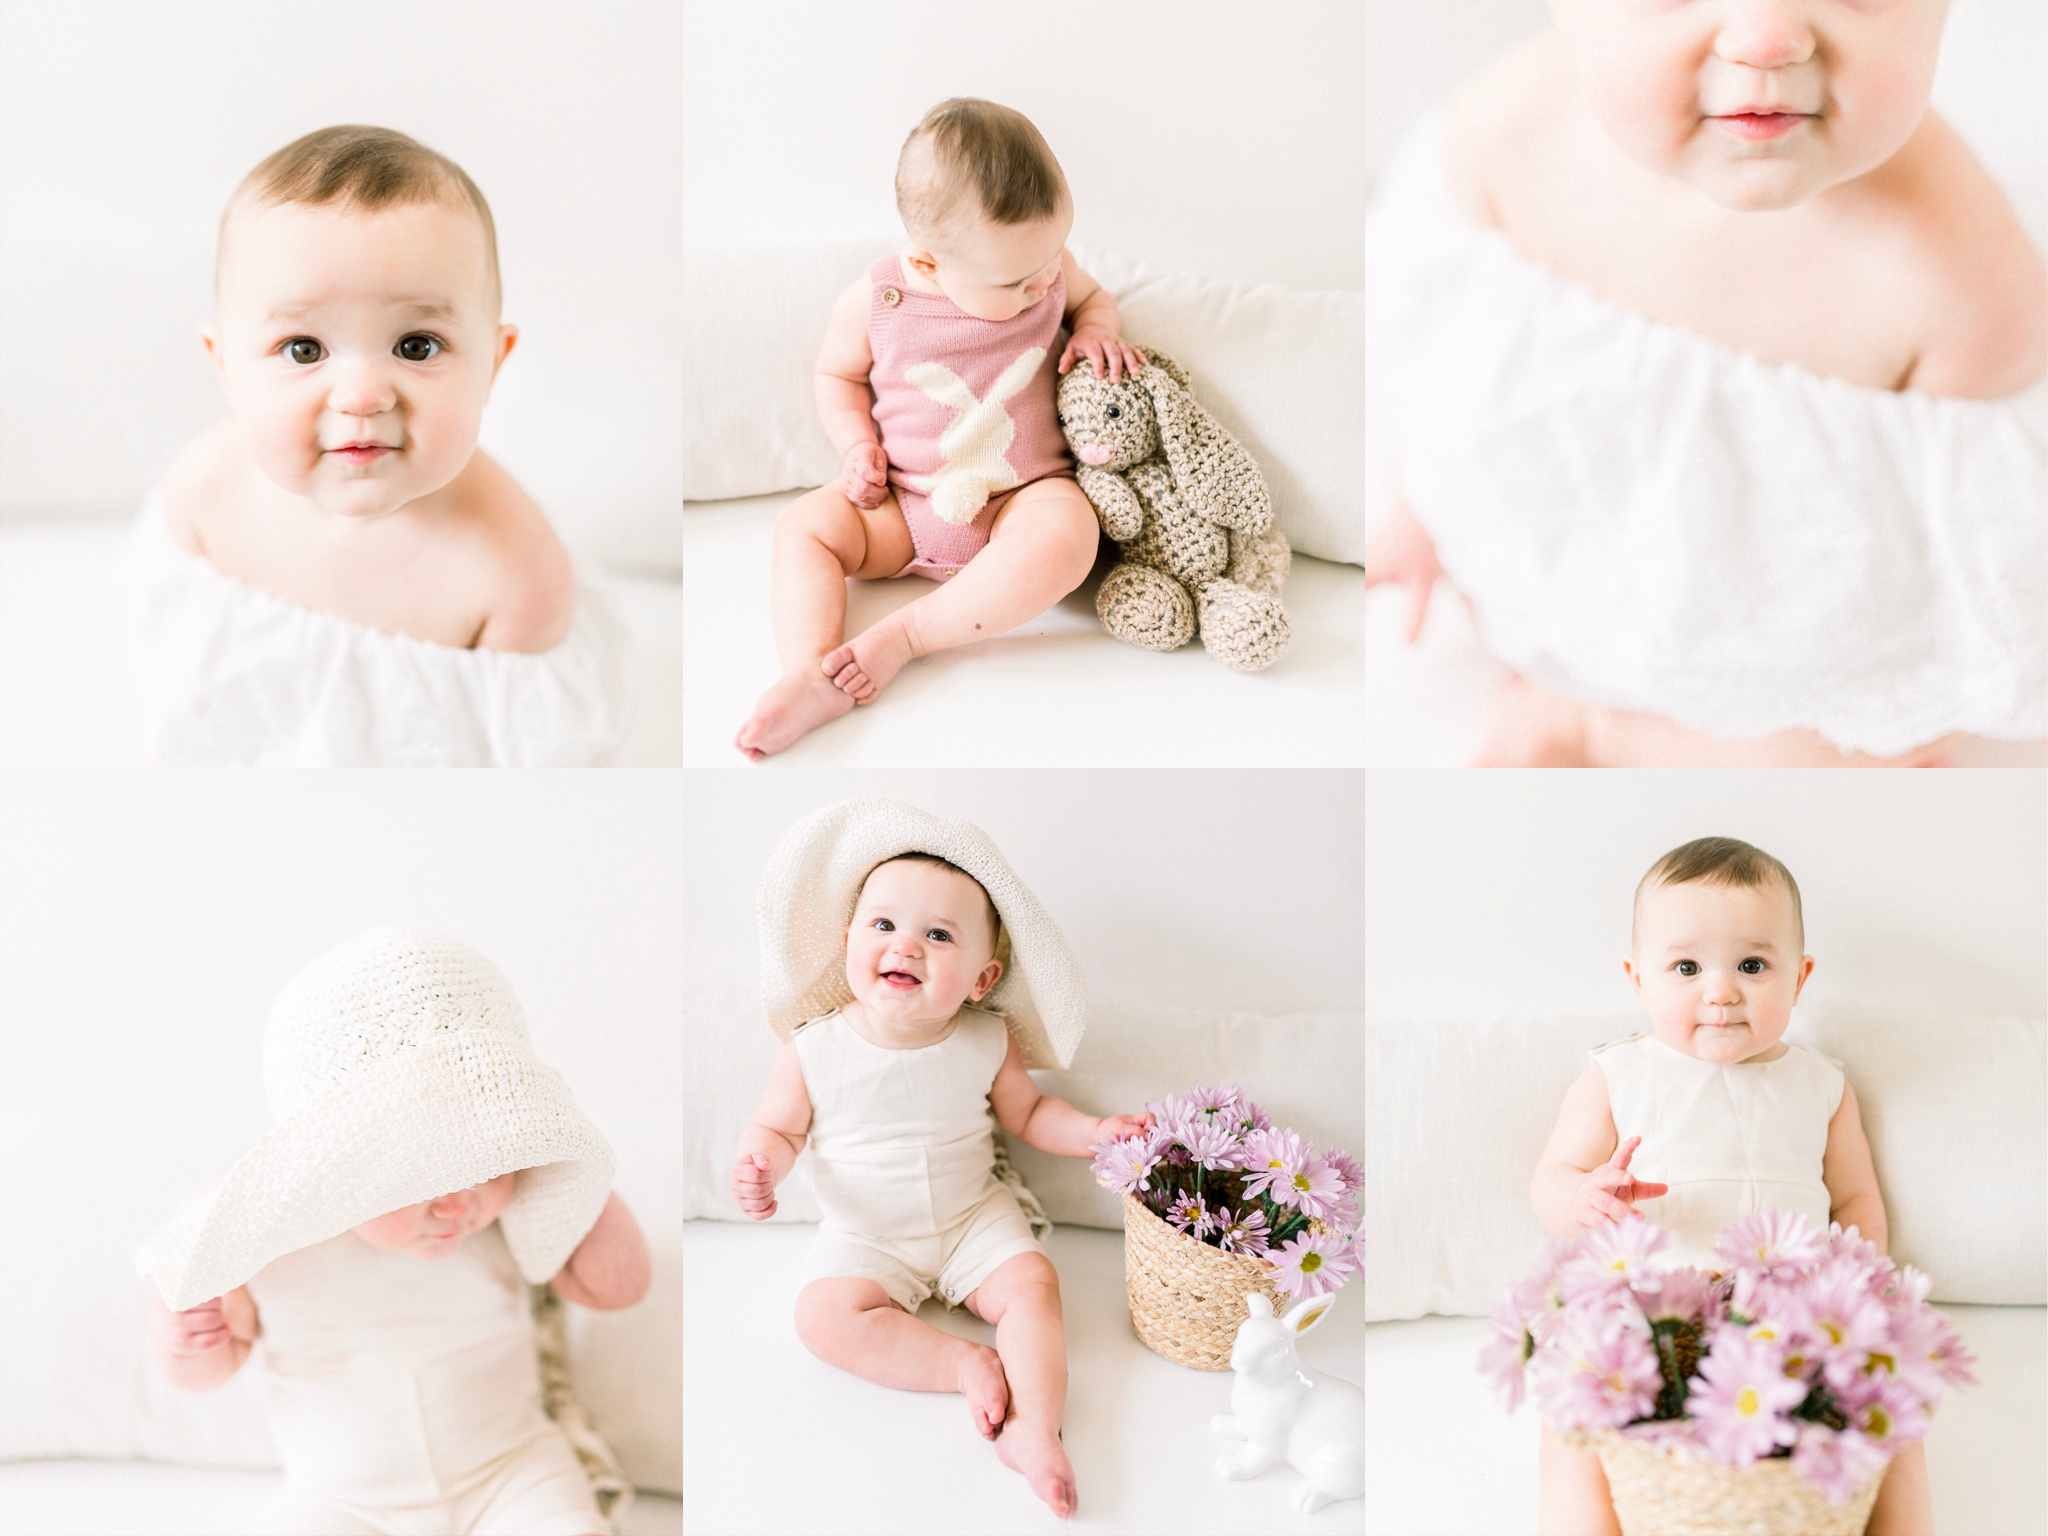 Paige | Spring Has Sprung 9 Month Baby Milestone Photography | Noblesville, IN